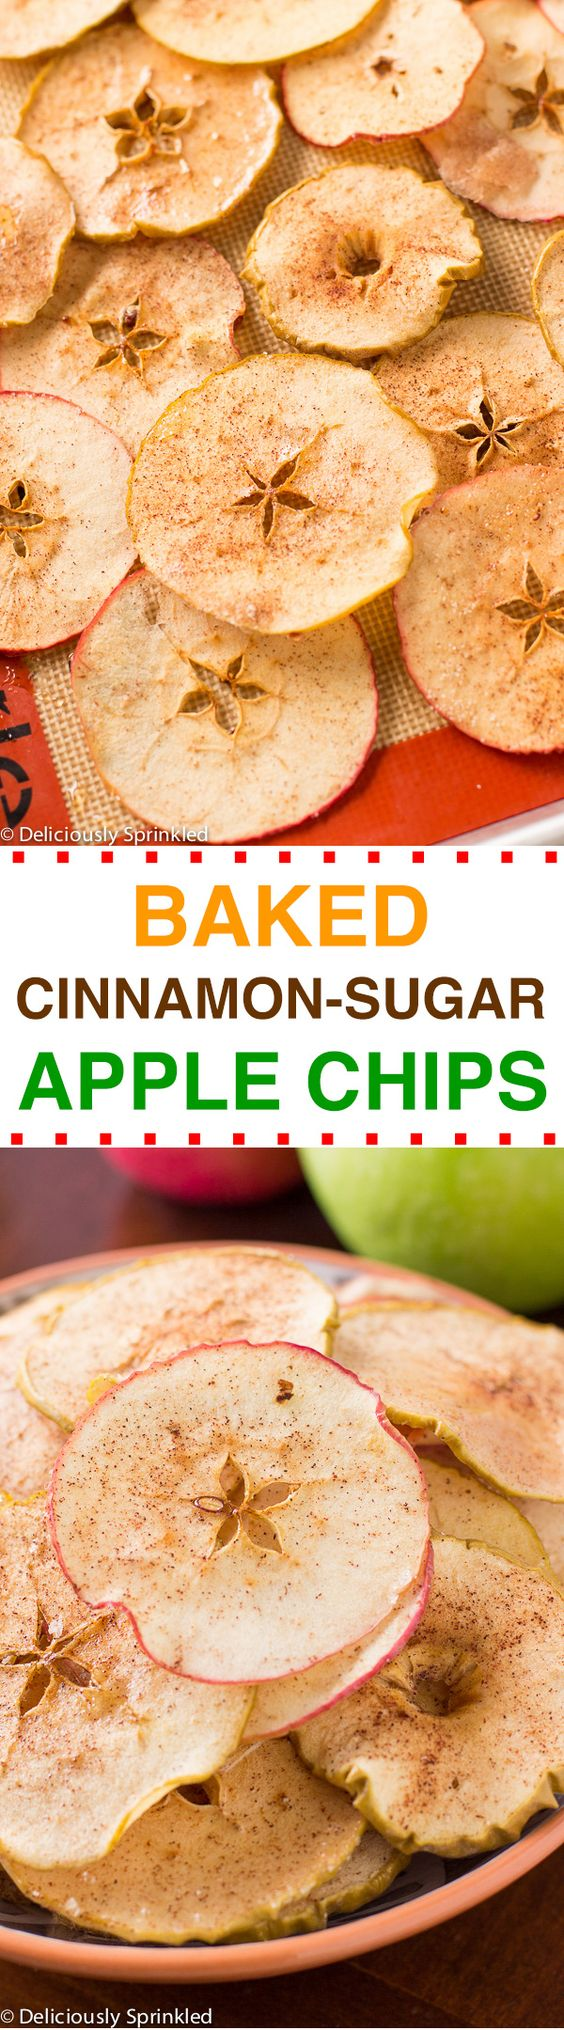 Apple chips, Baked apple chips and Baked apples on Pinterest